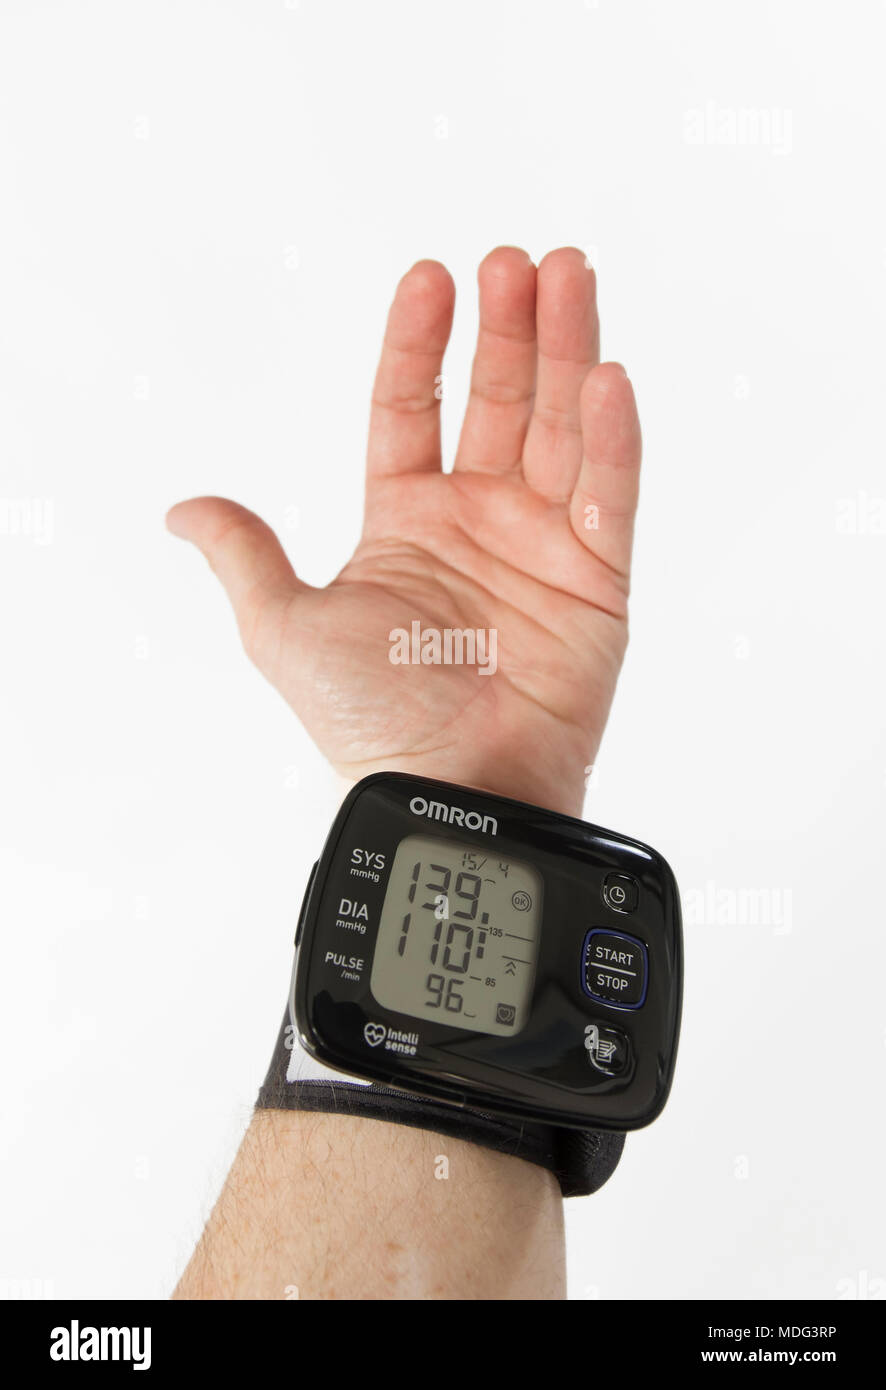 Taking blood pressure readings at home with a wrist monitor. a male hand against a white background - Stock Image